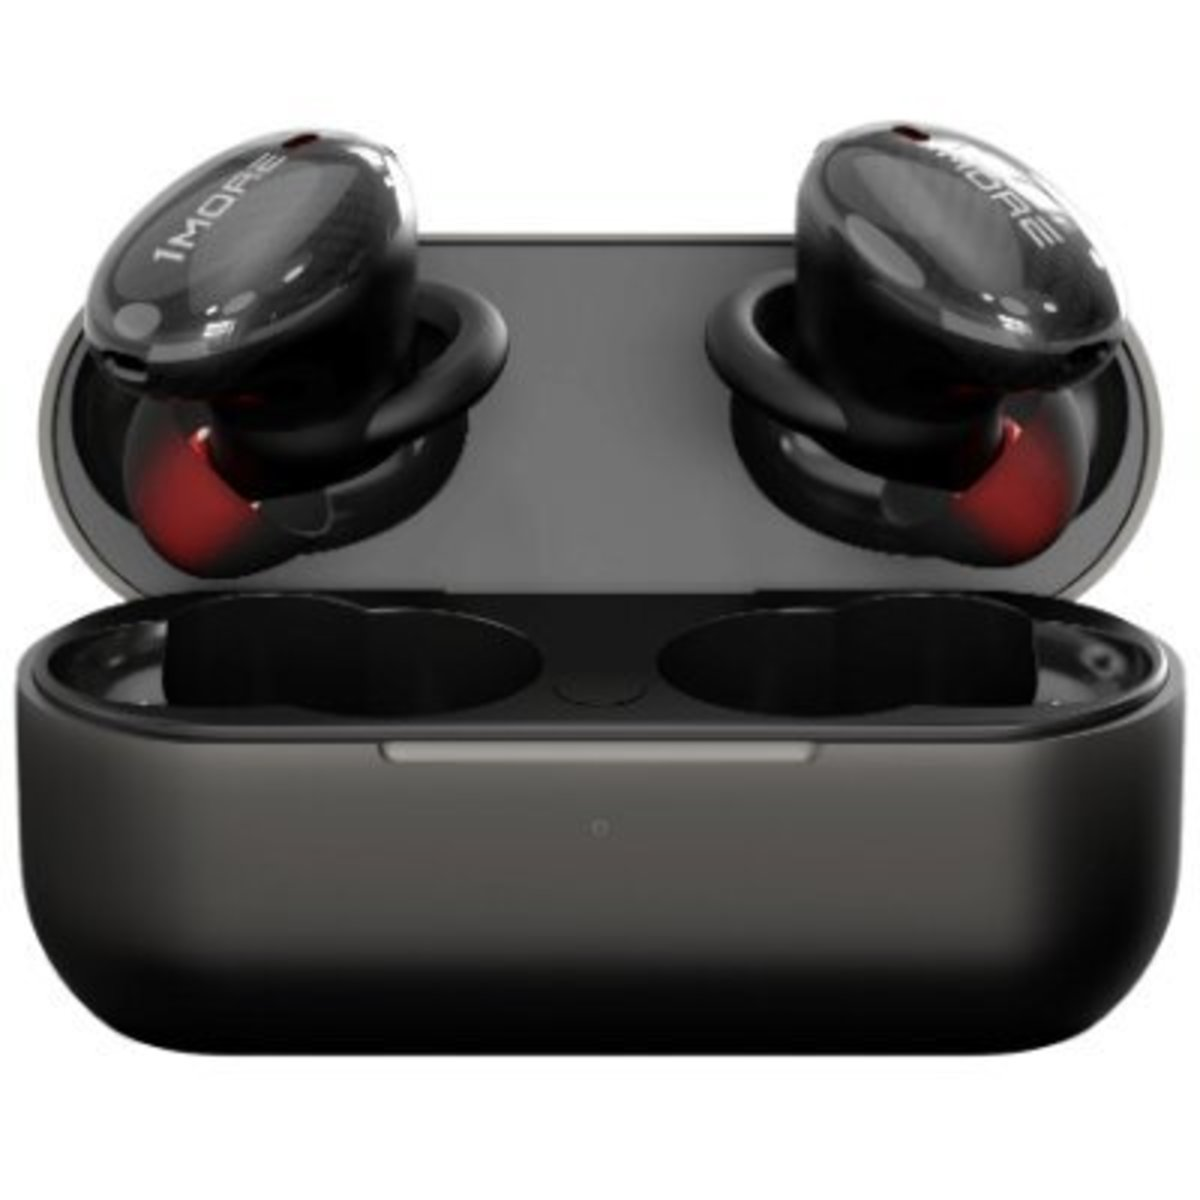 True Wireless ANC in-Ear Headphones